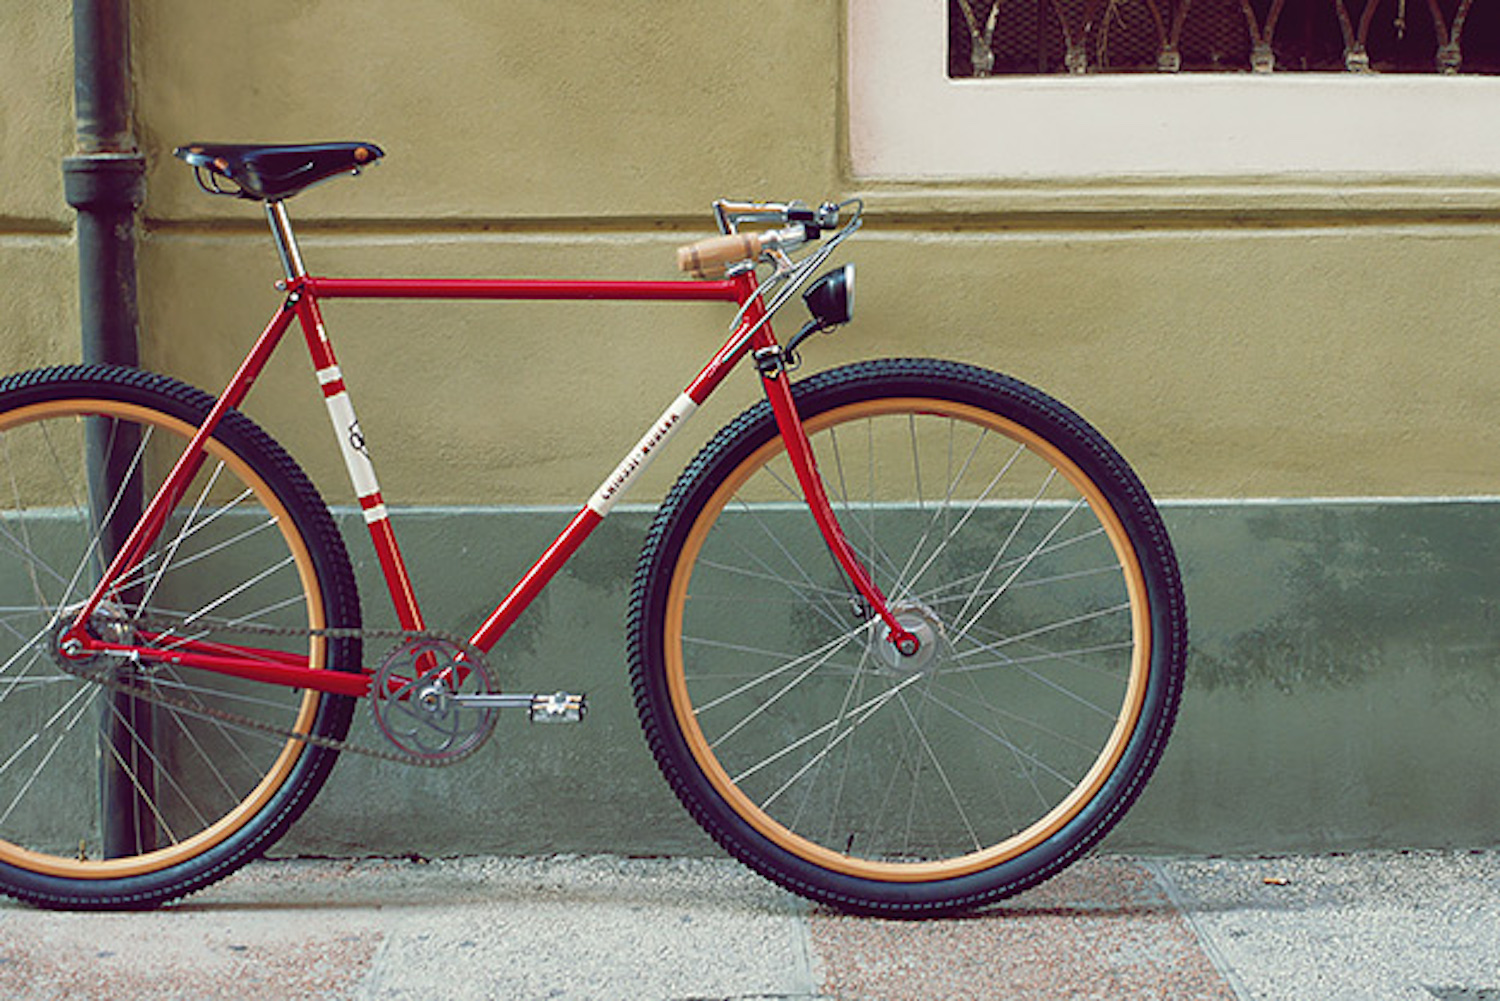 Chiossi commuter, courtesy of Cycle EXIF